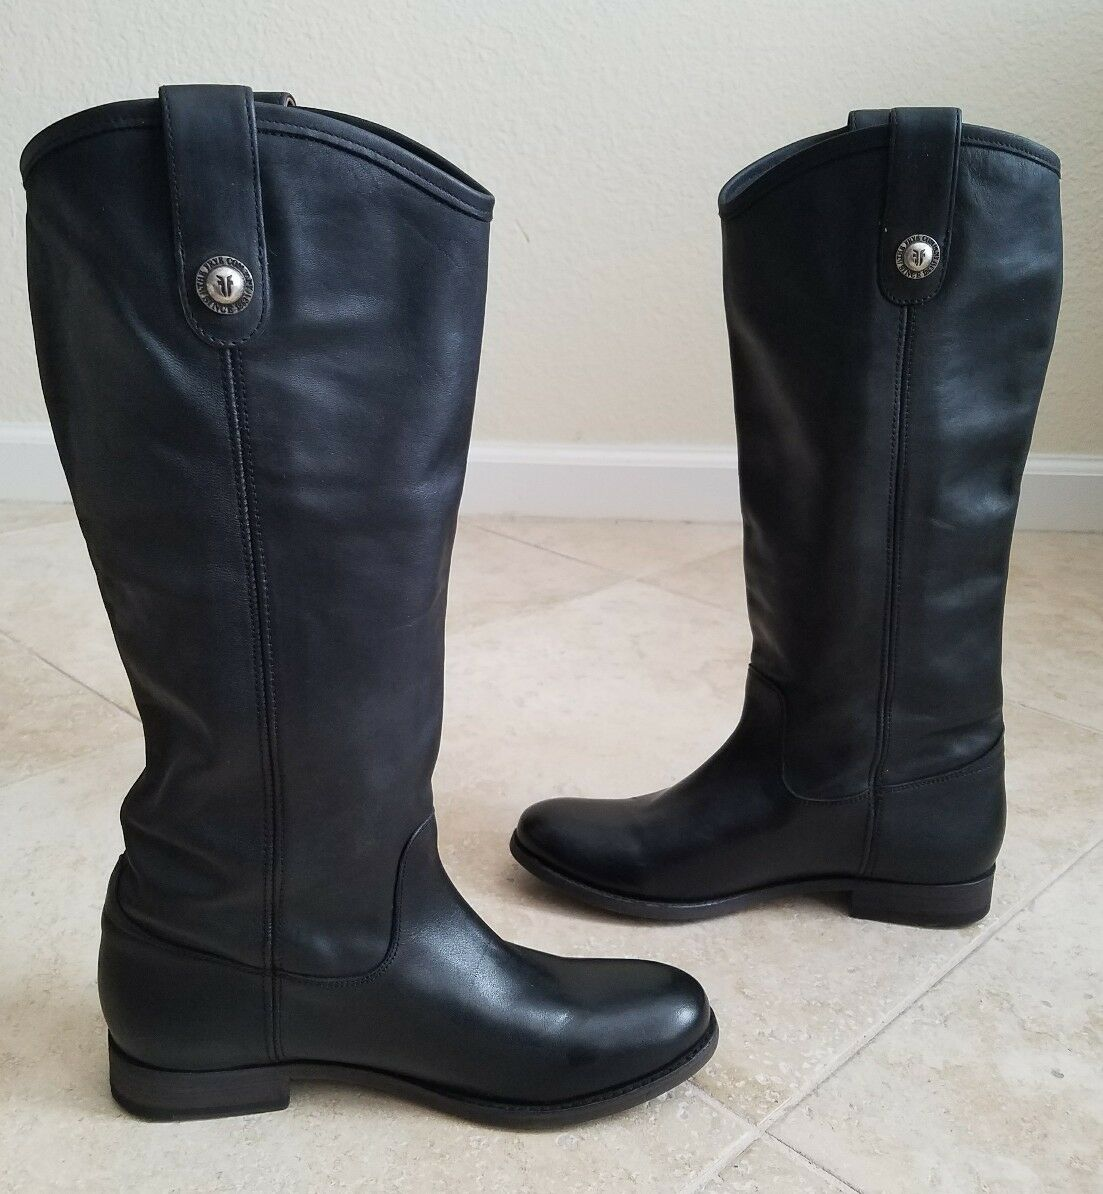 Frye Womens Melissa Button Riding  Leather Boots Size 7.5 B  Black